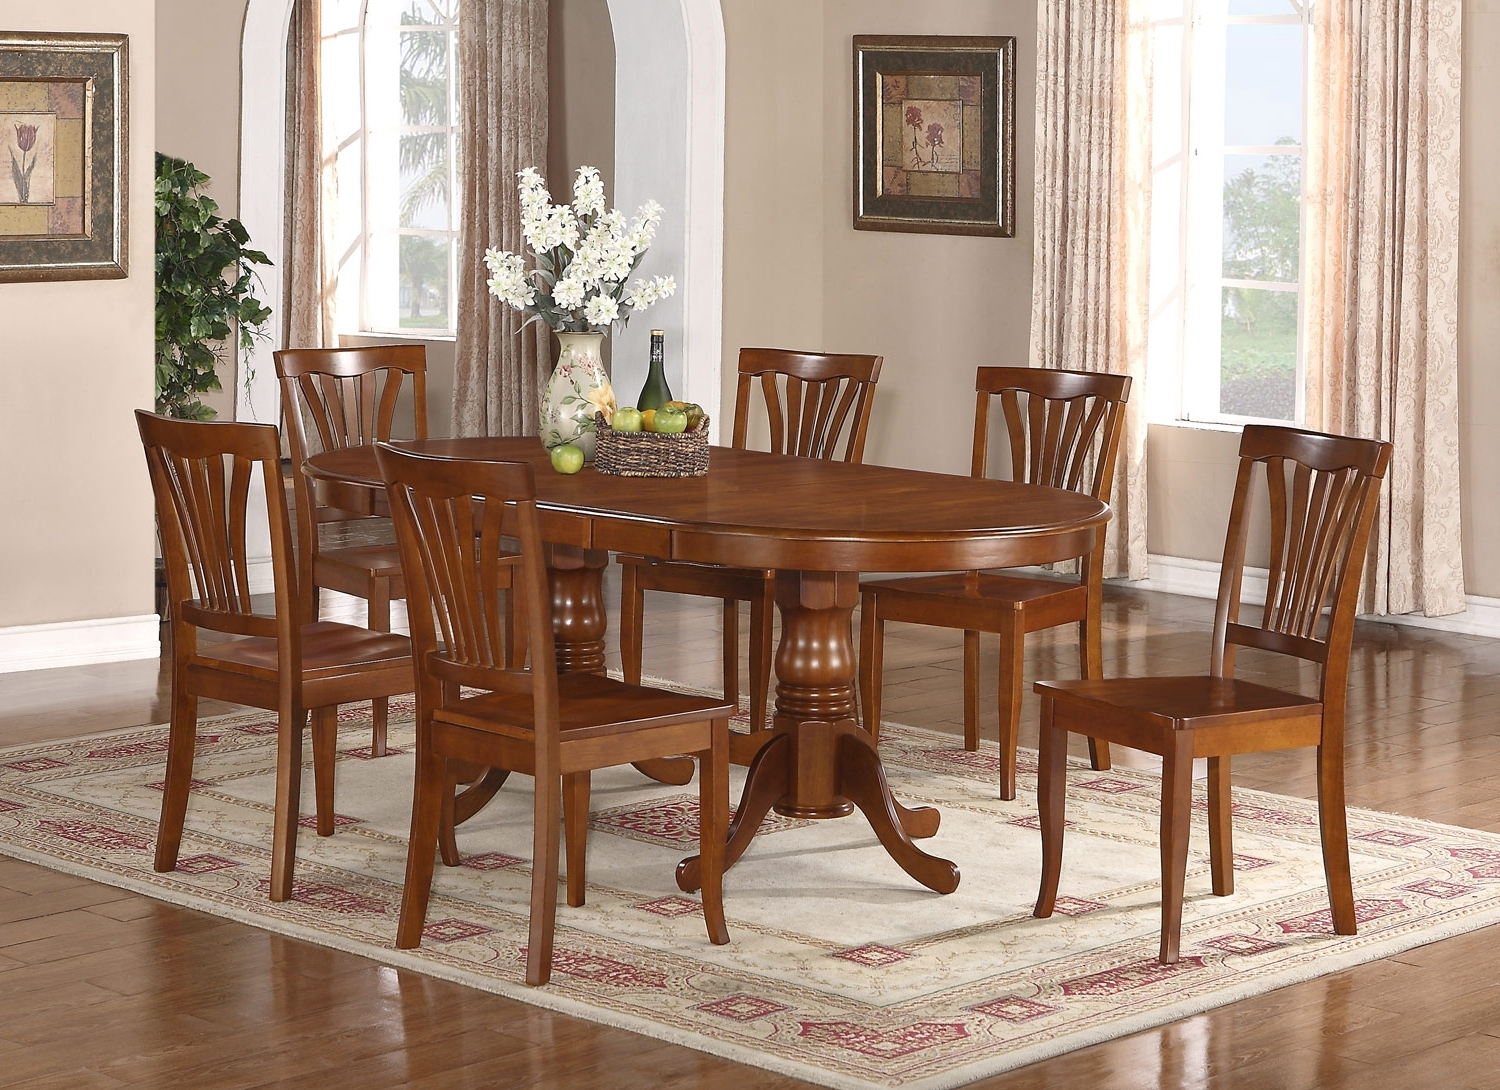 6 Chairs And Dining Tables In Fashionable 7Pc Oval Newton Dining Room Set Extension Leaf Table 6 Chairs  (View 3 of 25)